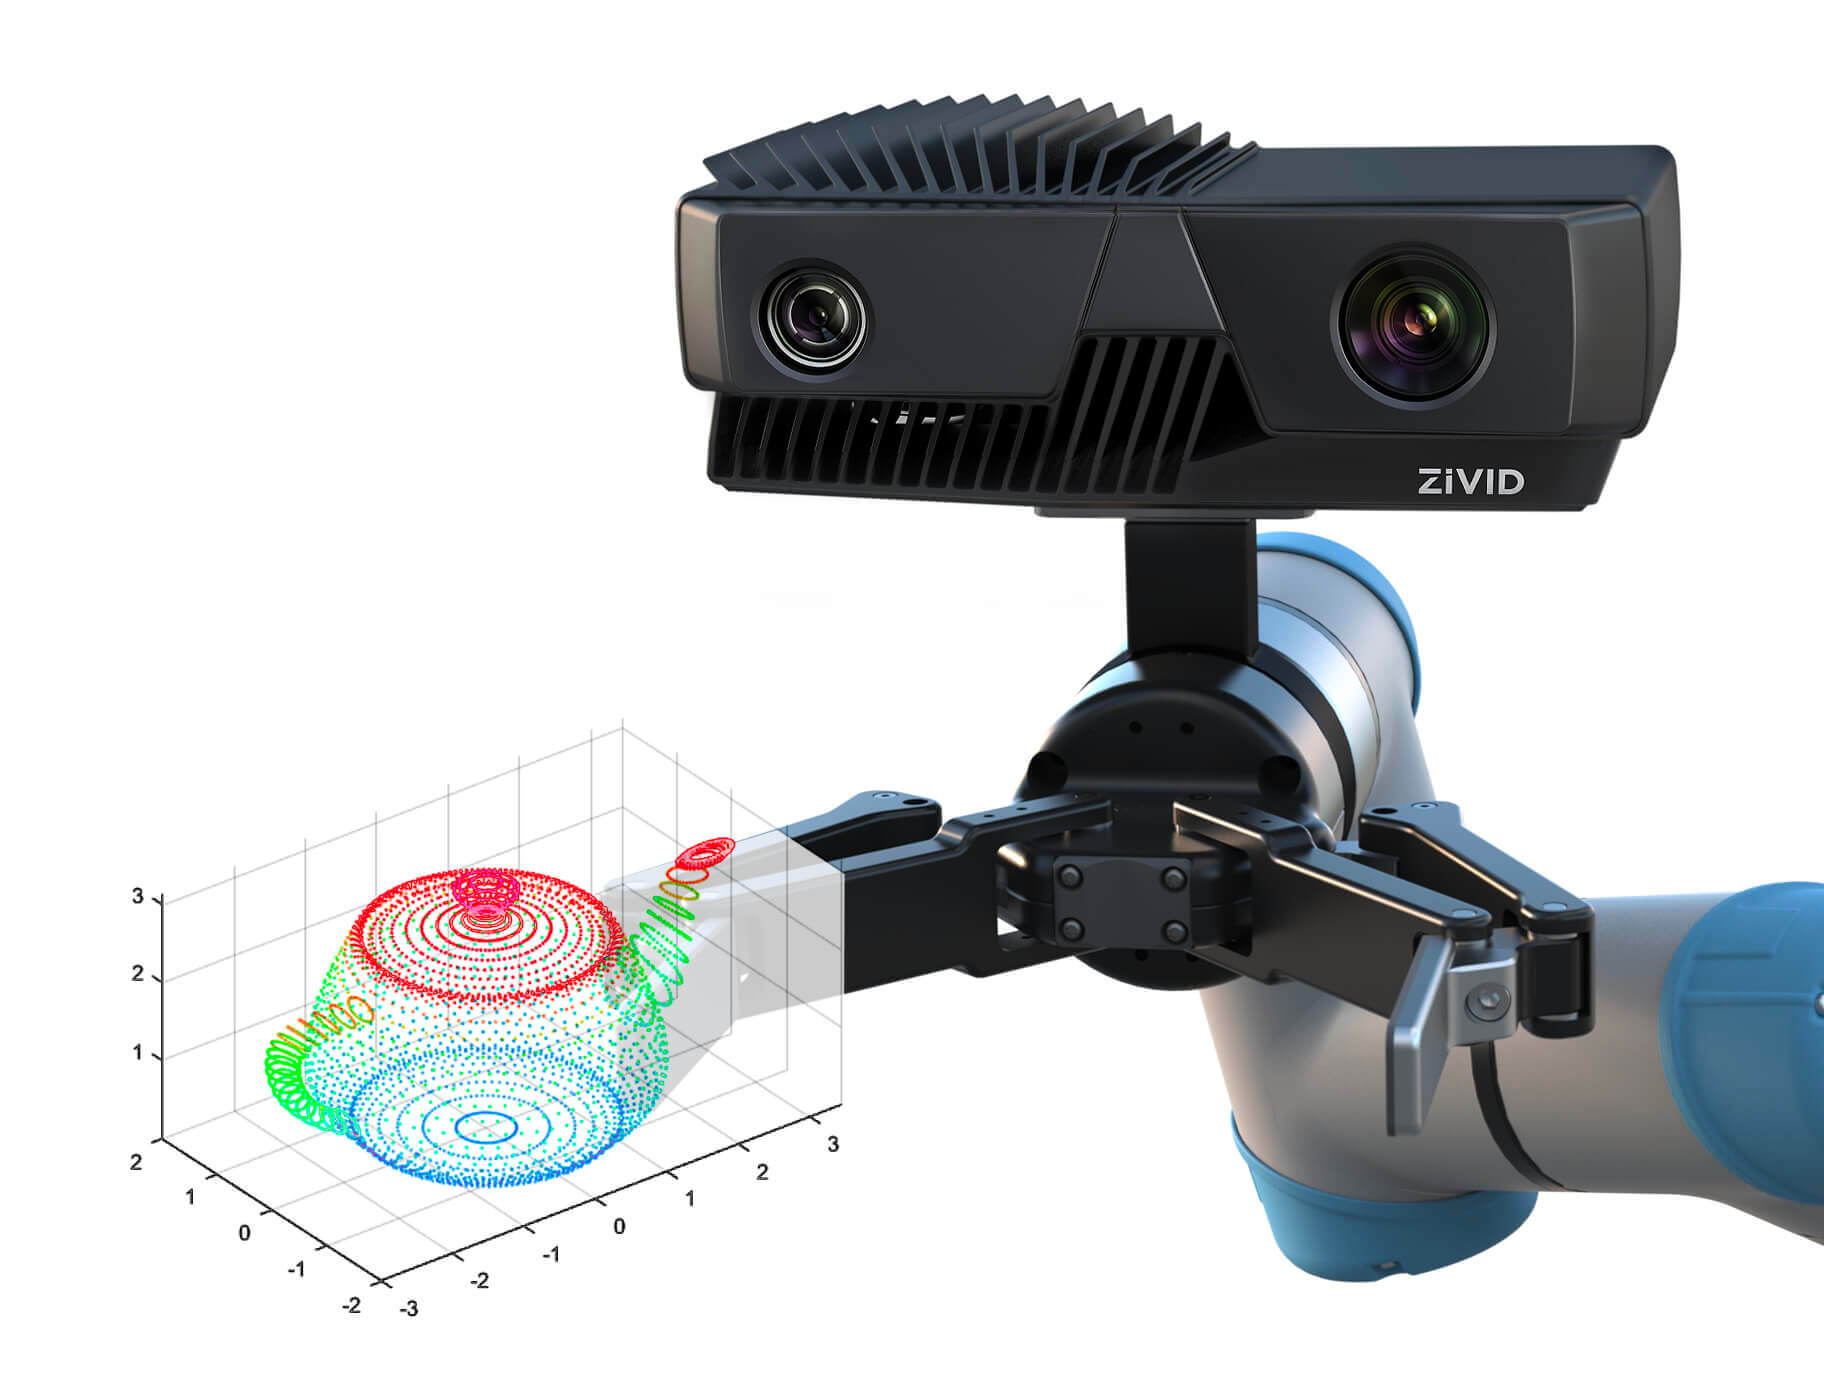 Collaborative 3D Zivid point cloud captures